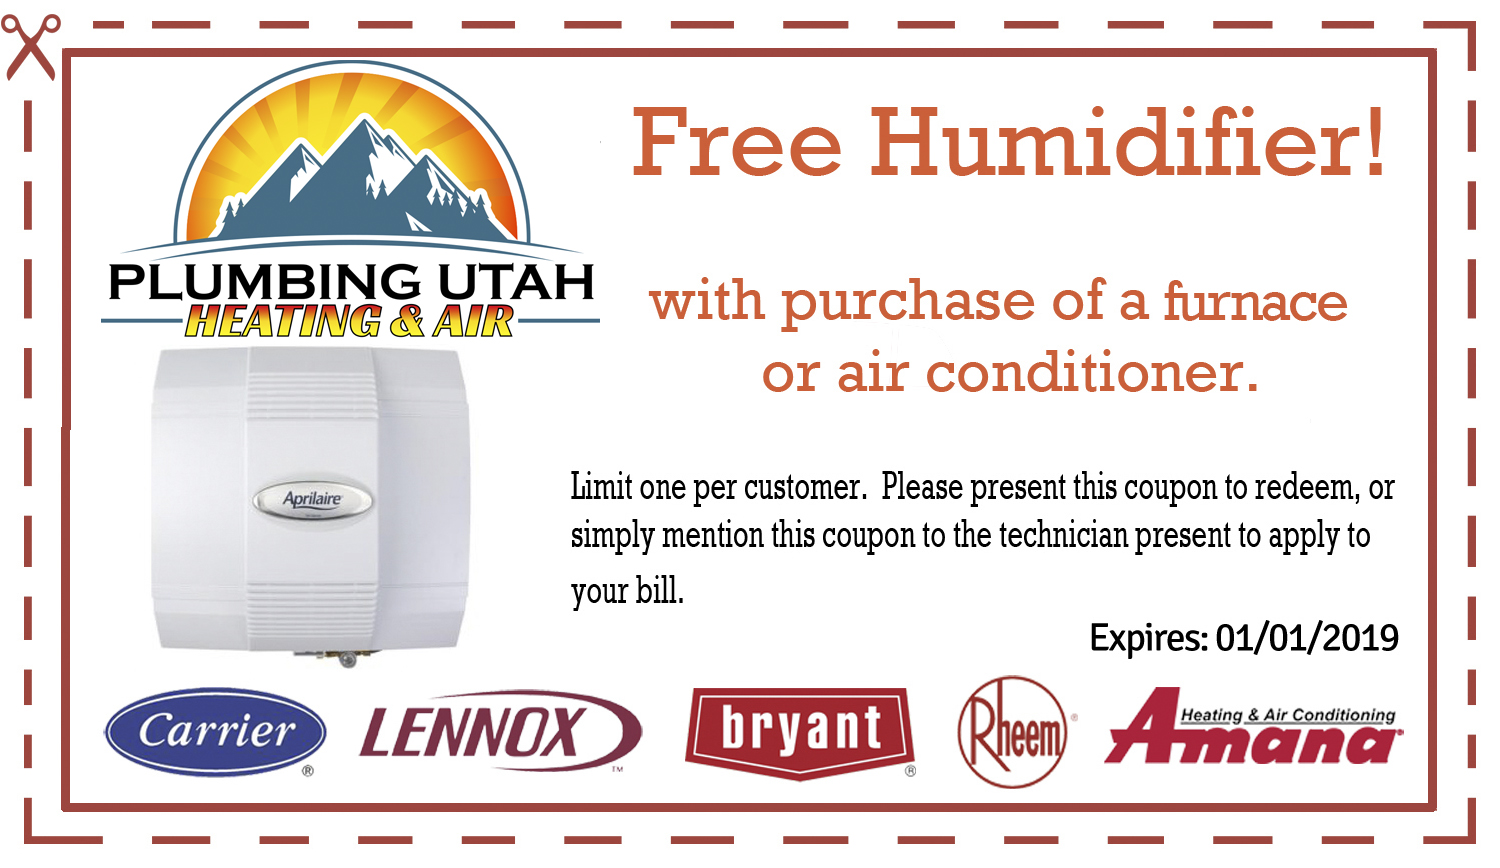 plumbing-utah-heating-air-free-humidifier-final